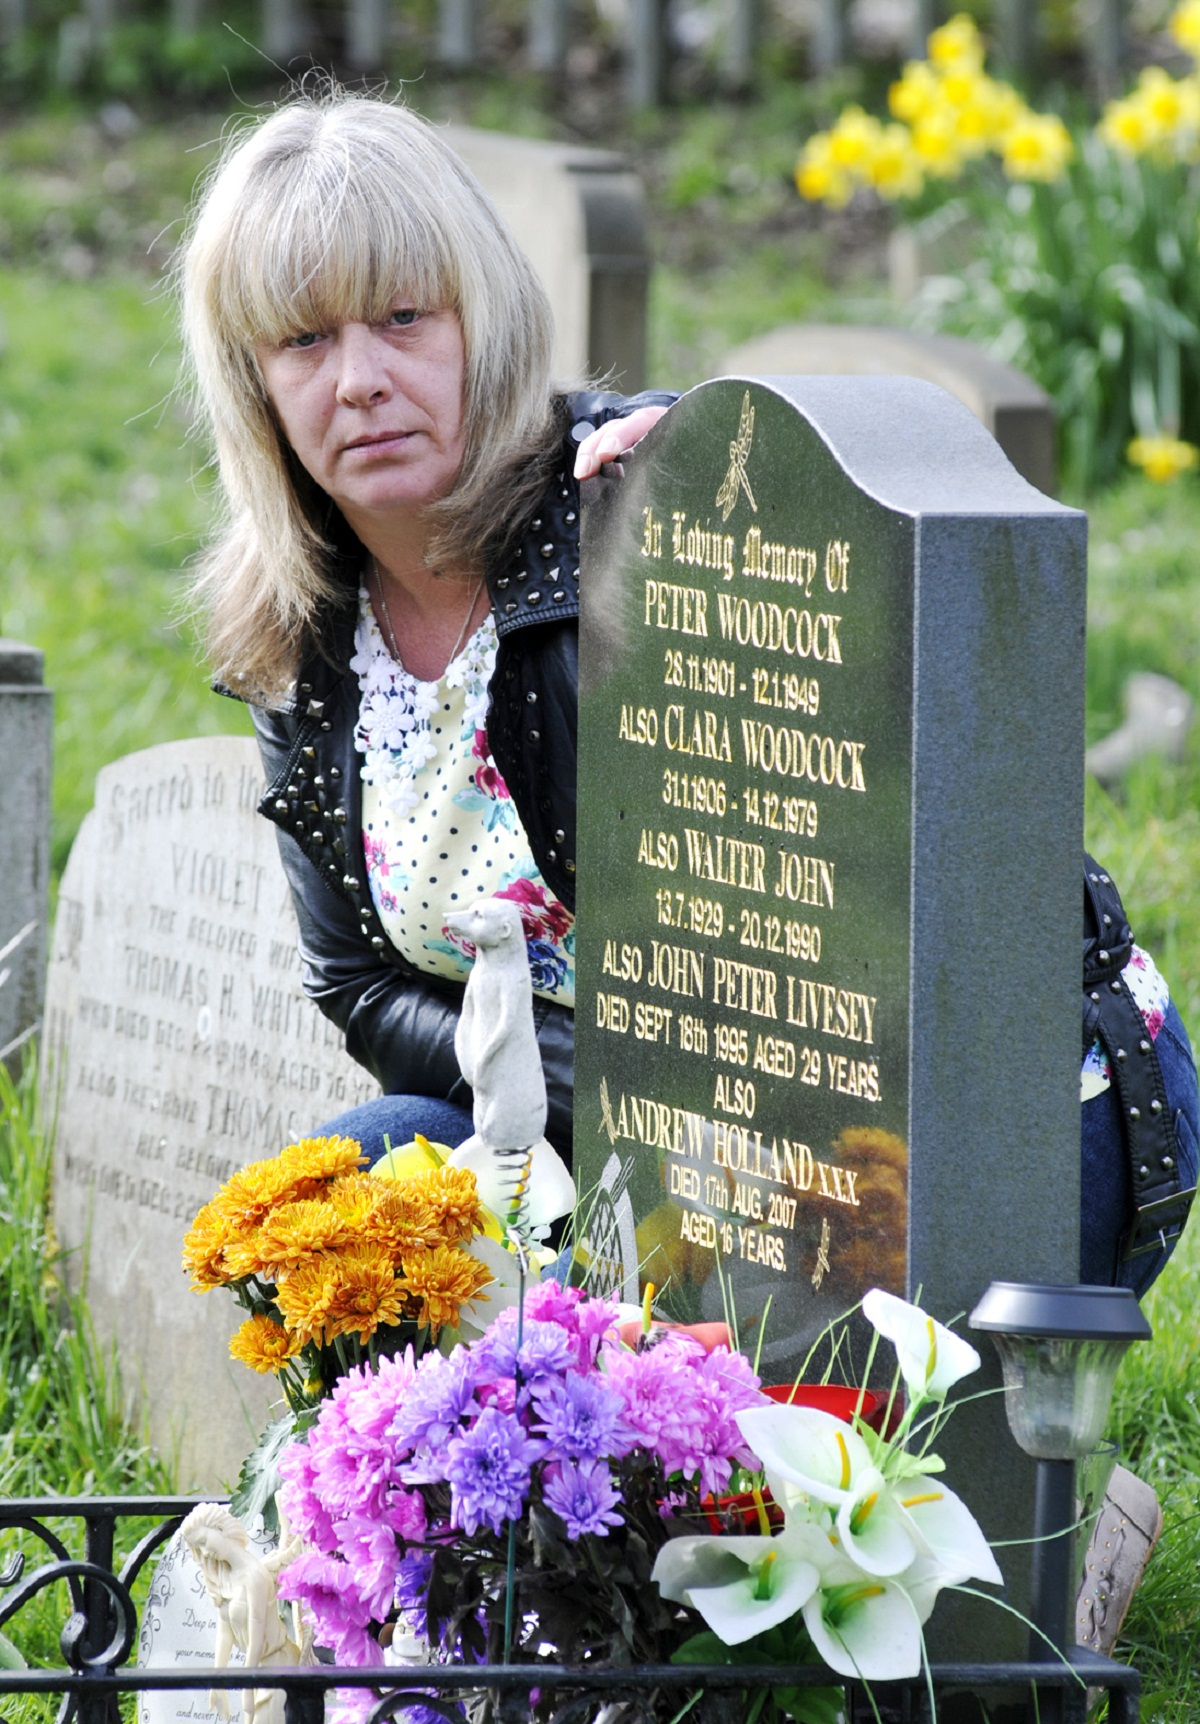 Thieves steal from murdered teenager's grave